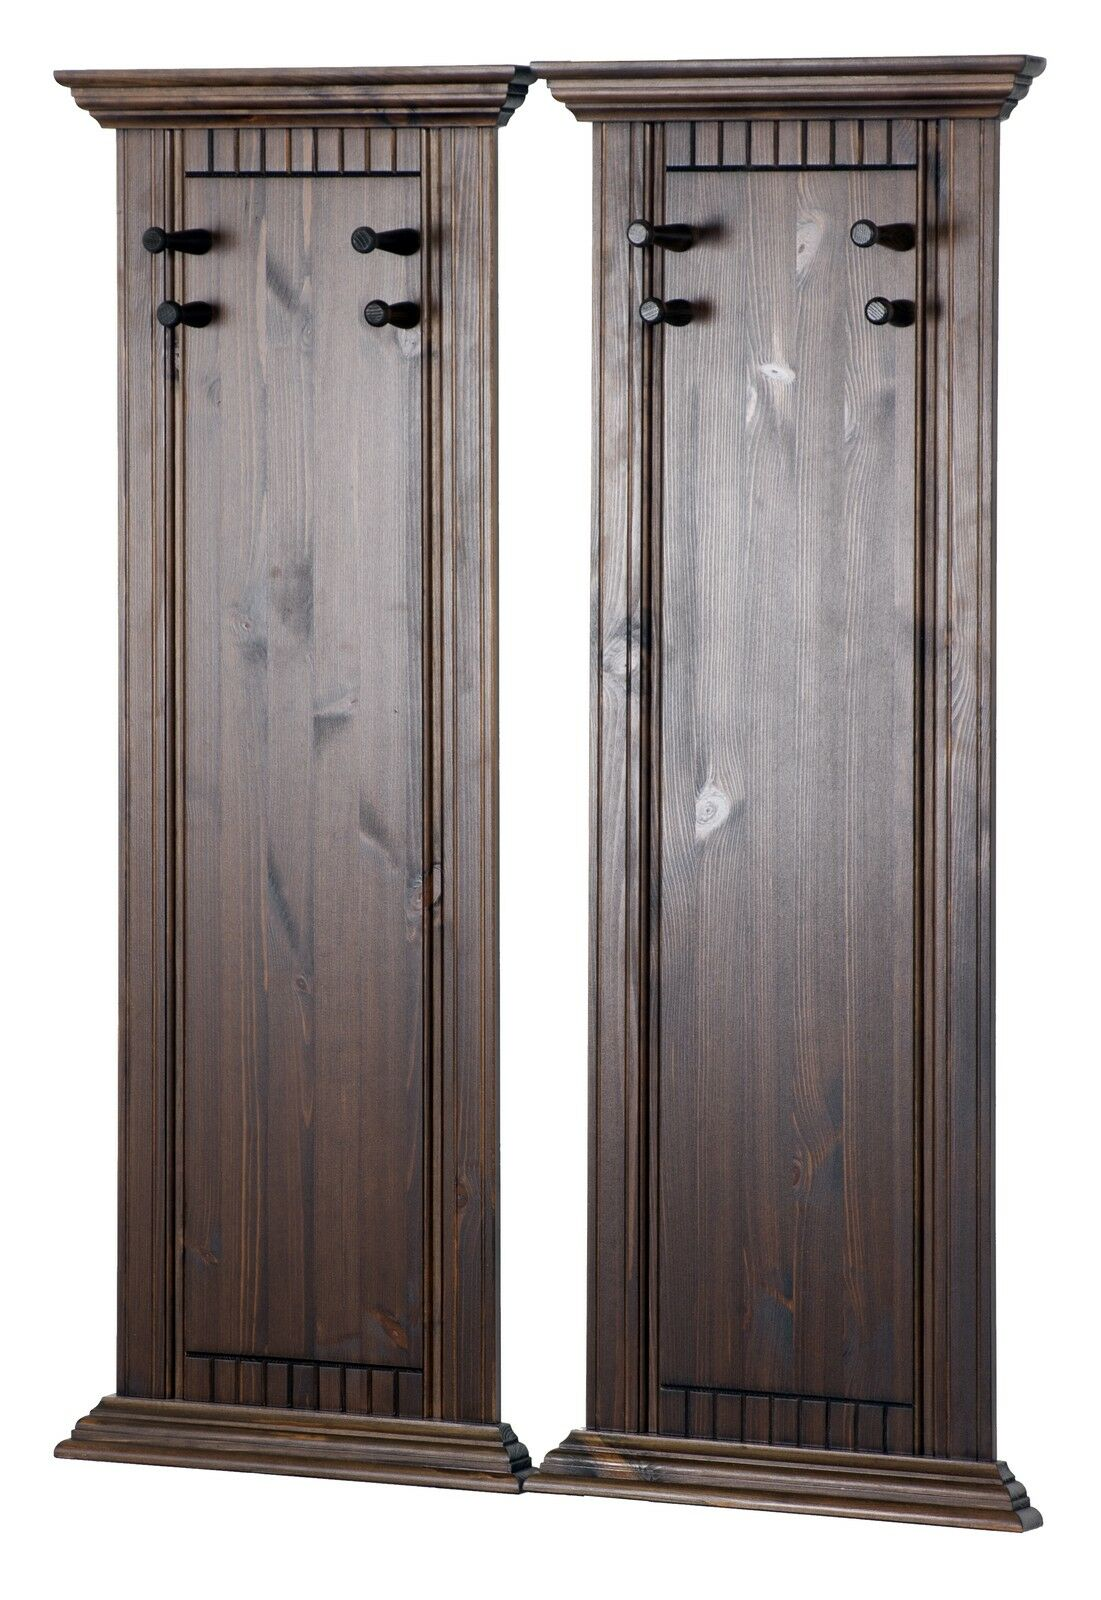 garderobenpaneel im 2er set garderobe wandgarderobe. Black Bedroom Furniture Sets. Home Design Ideas